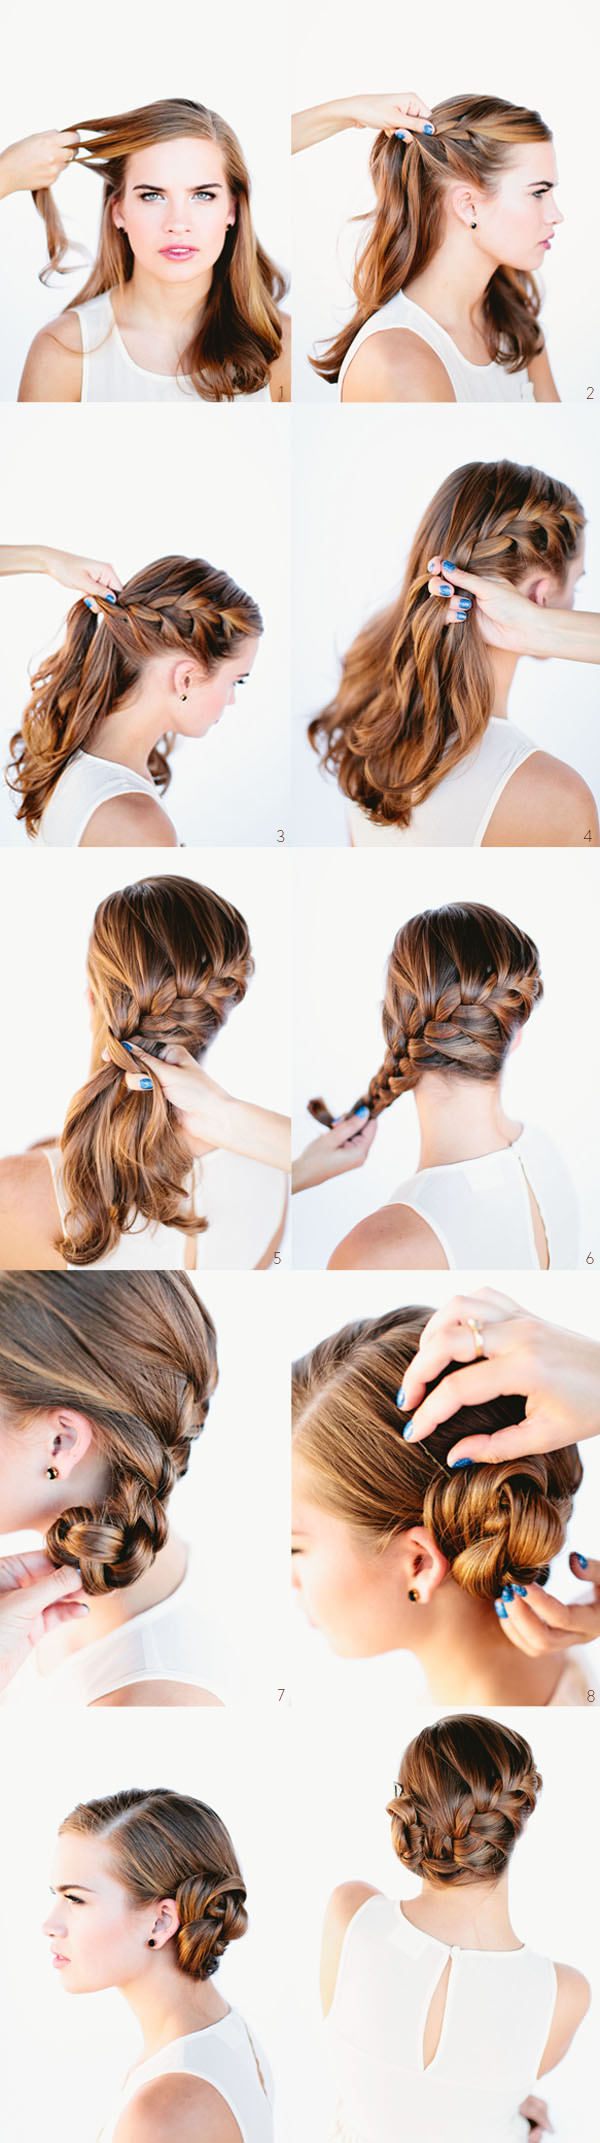 3-Braided-Bun Tutorial (2)